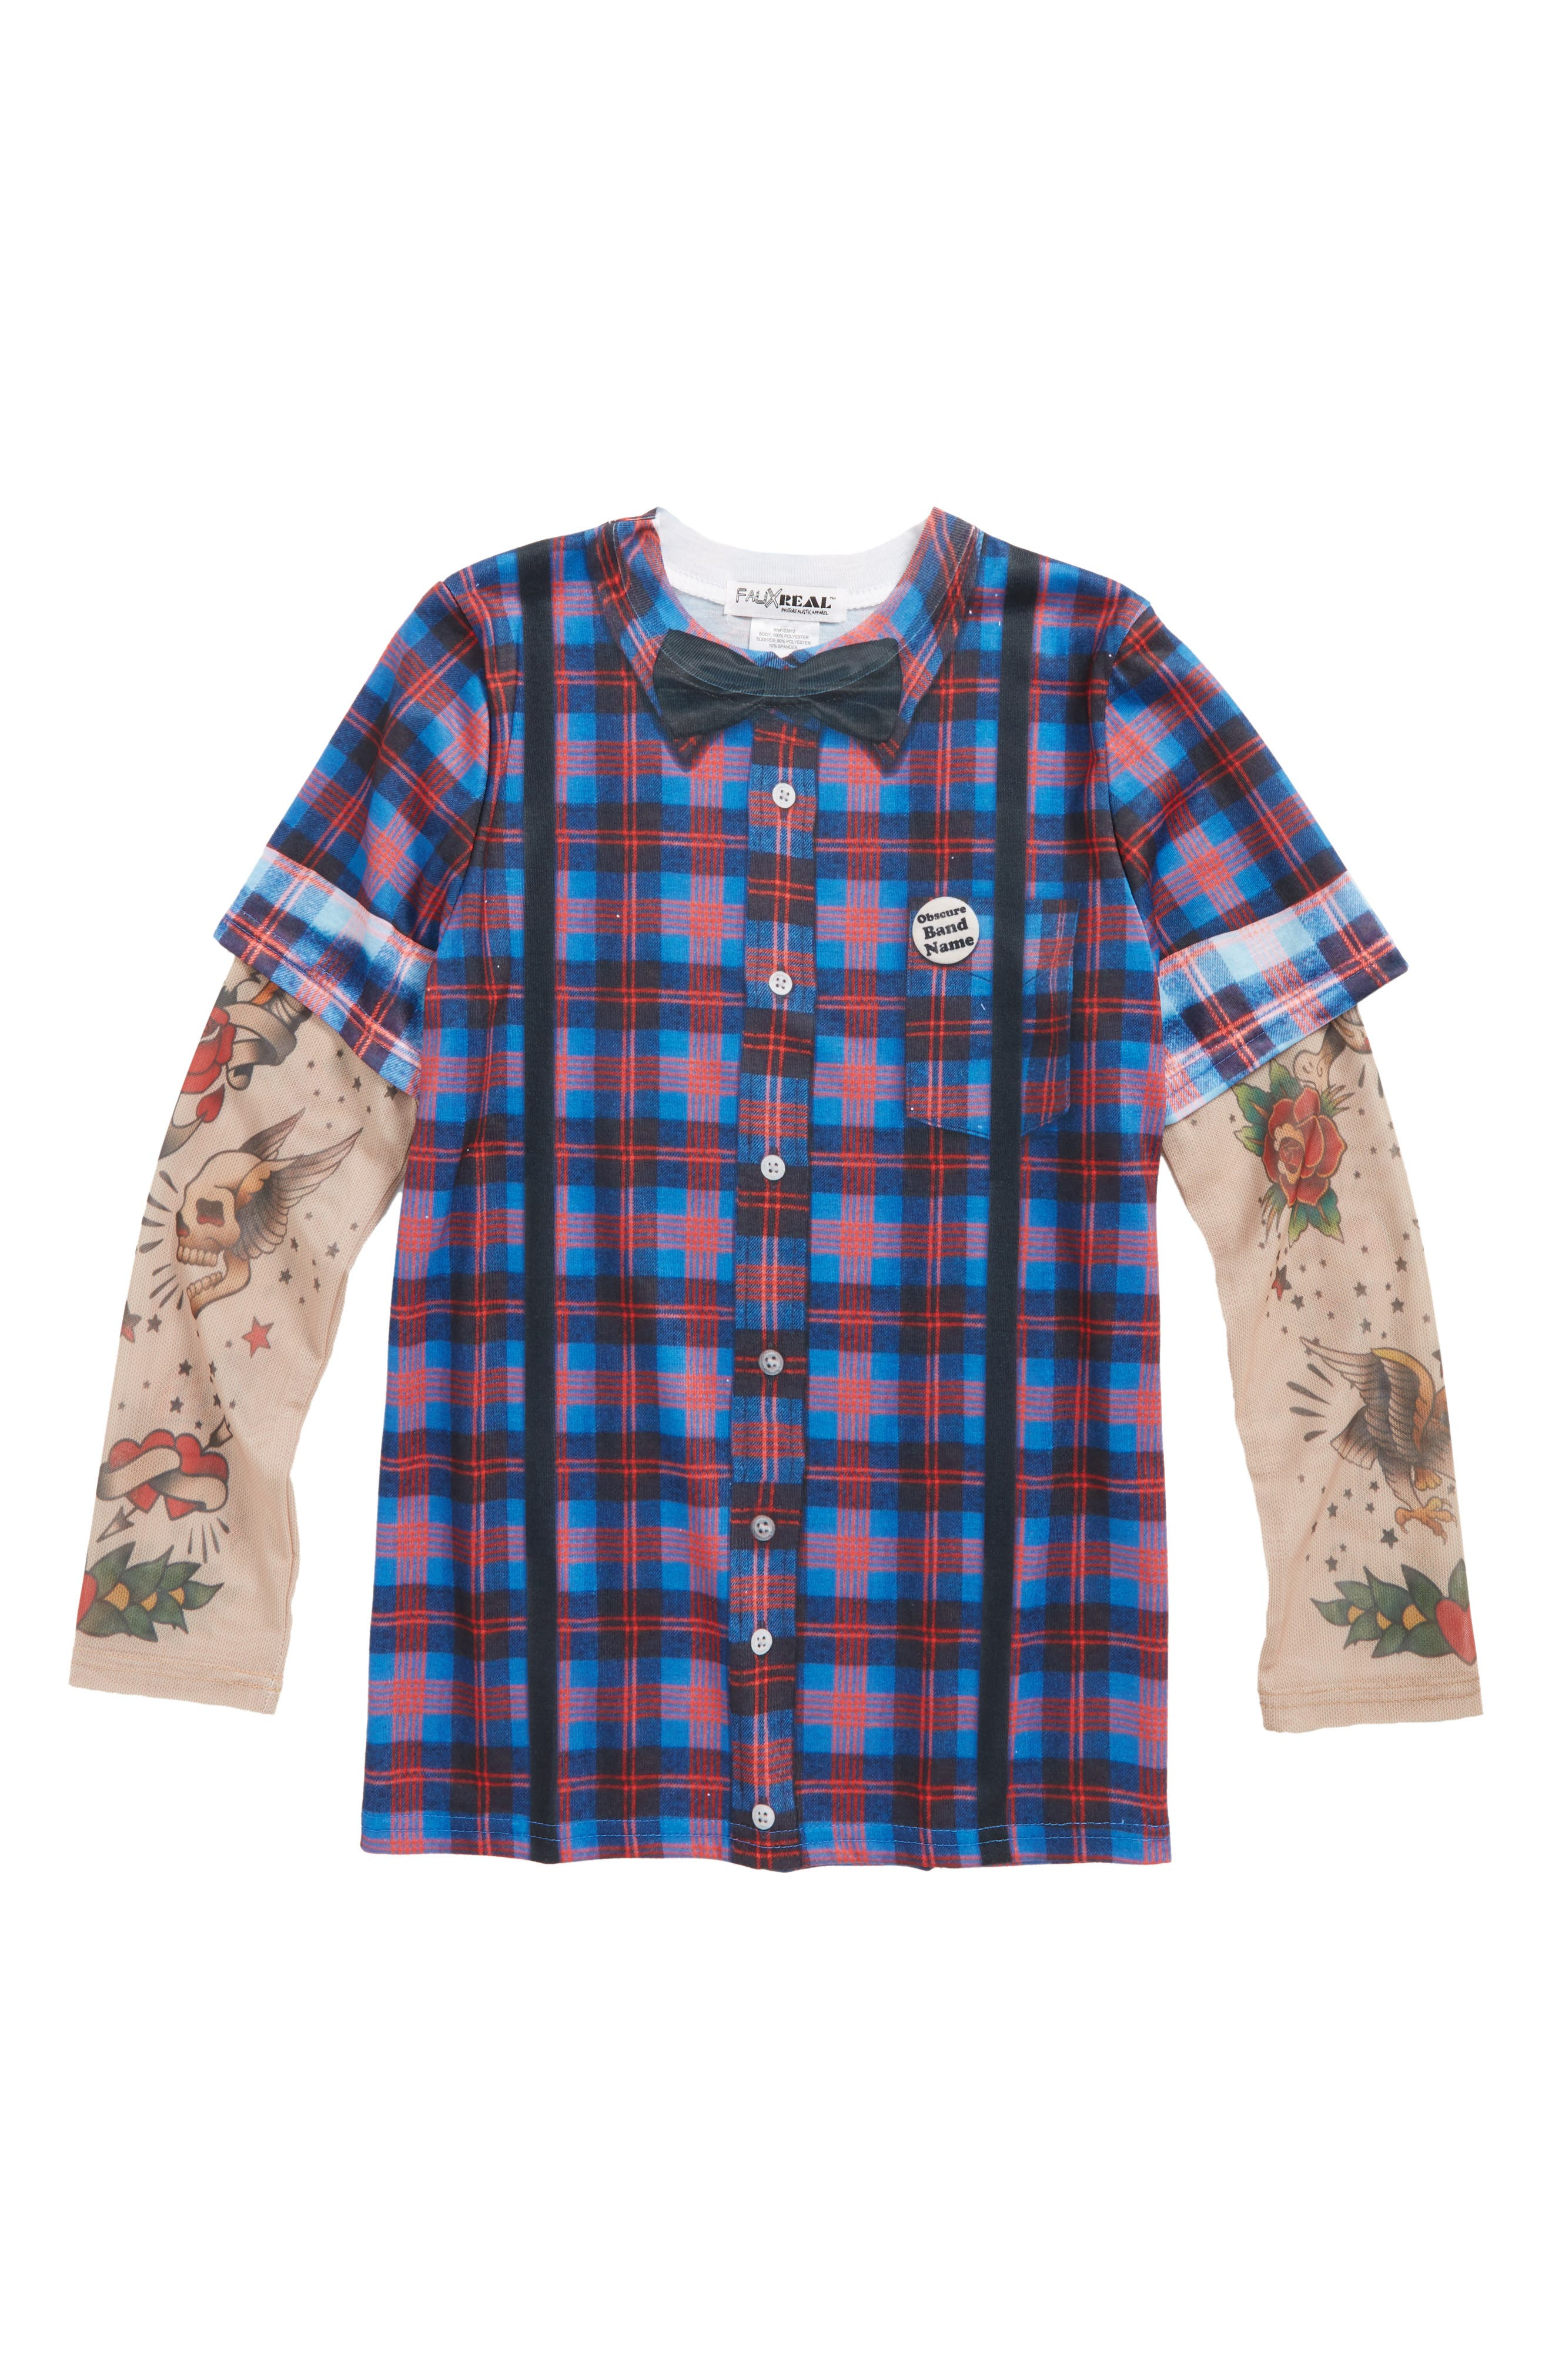 Alternate Image 1 Selected - Faux Real Hipster Bow Tie & Suspender Print T-Shirt with Tattoo Print Sleeves (Little Boys & Big Boys)